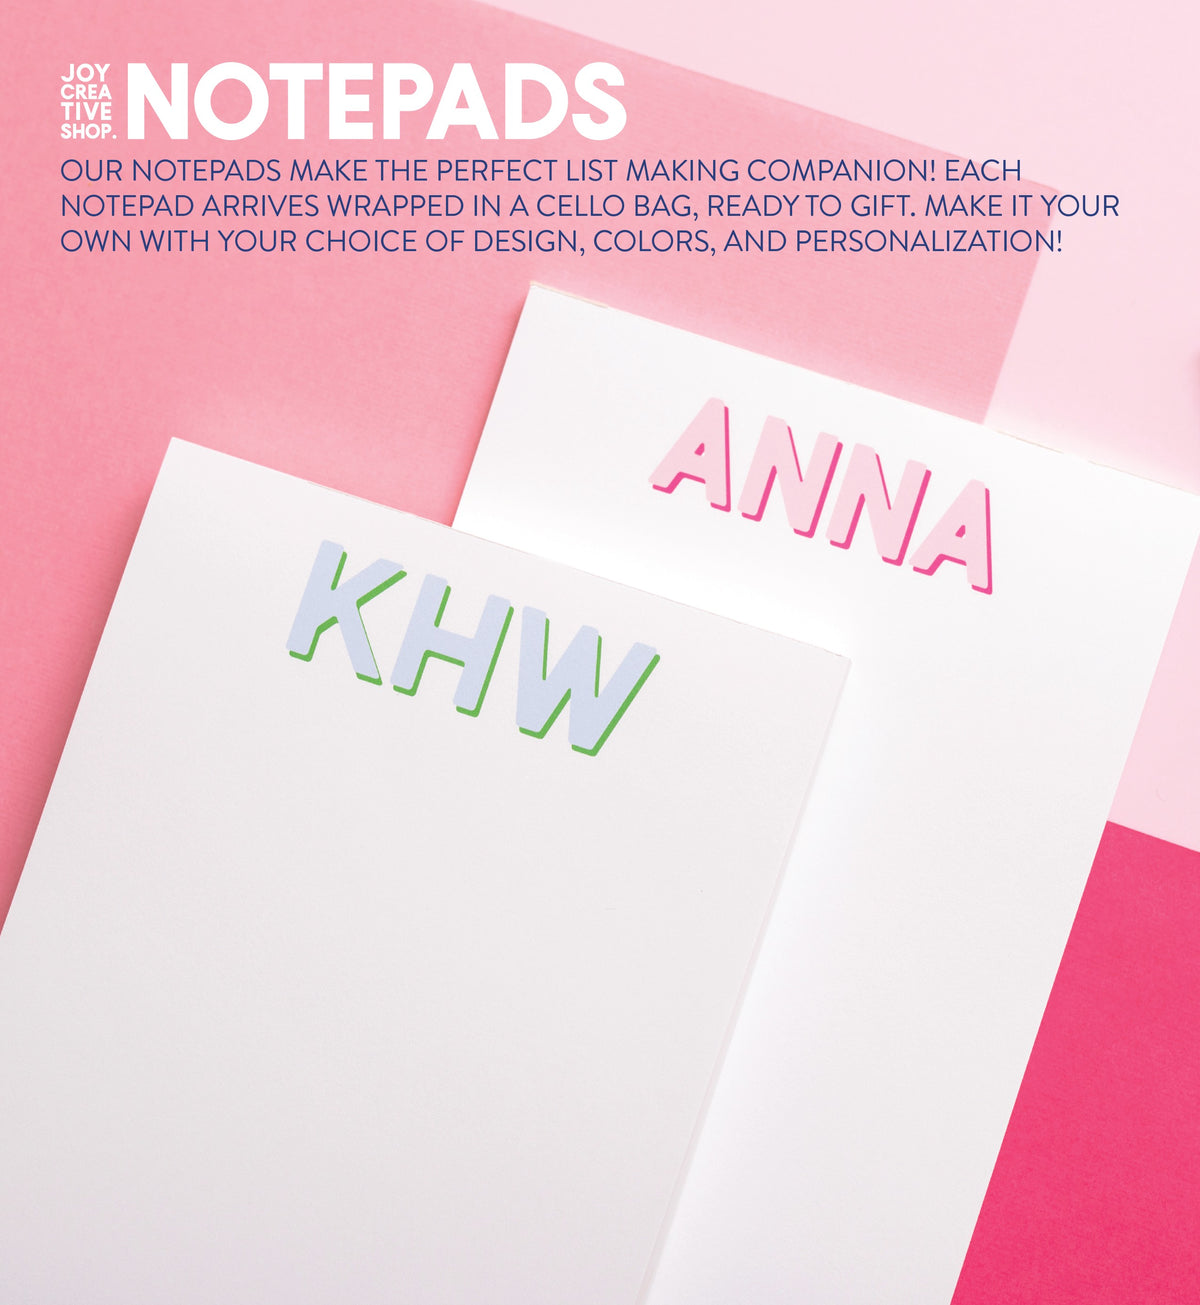 Color Block Pinks/Blues/Greens Notepad